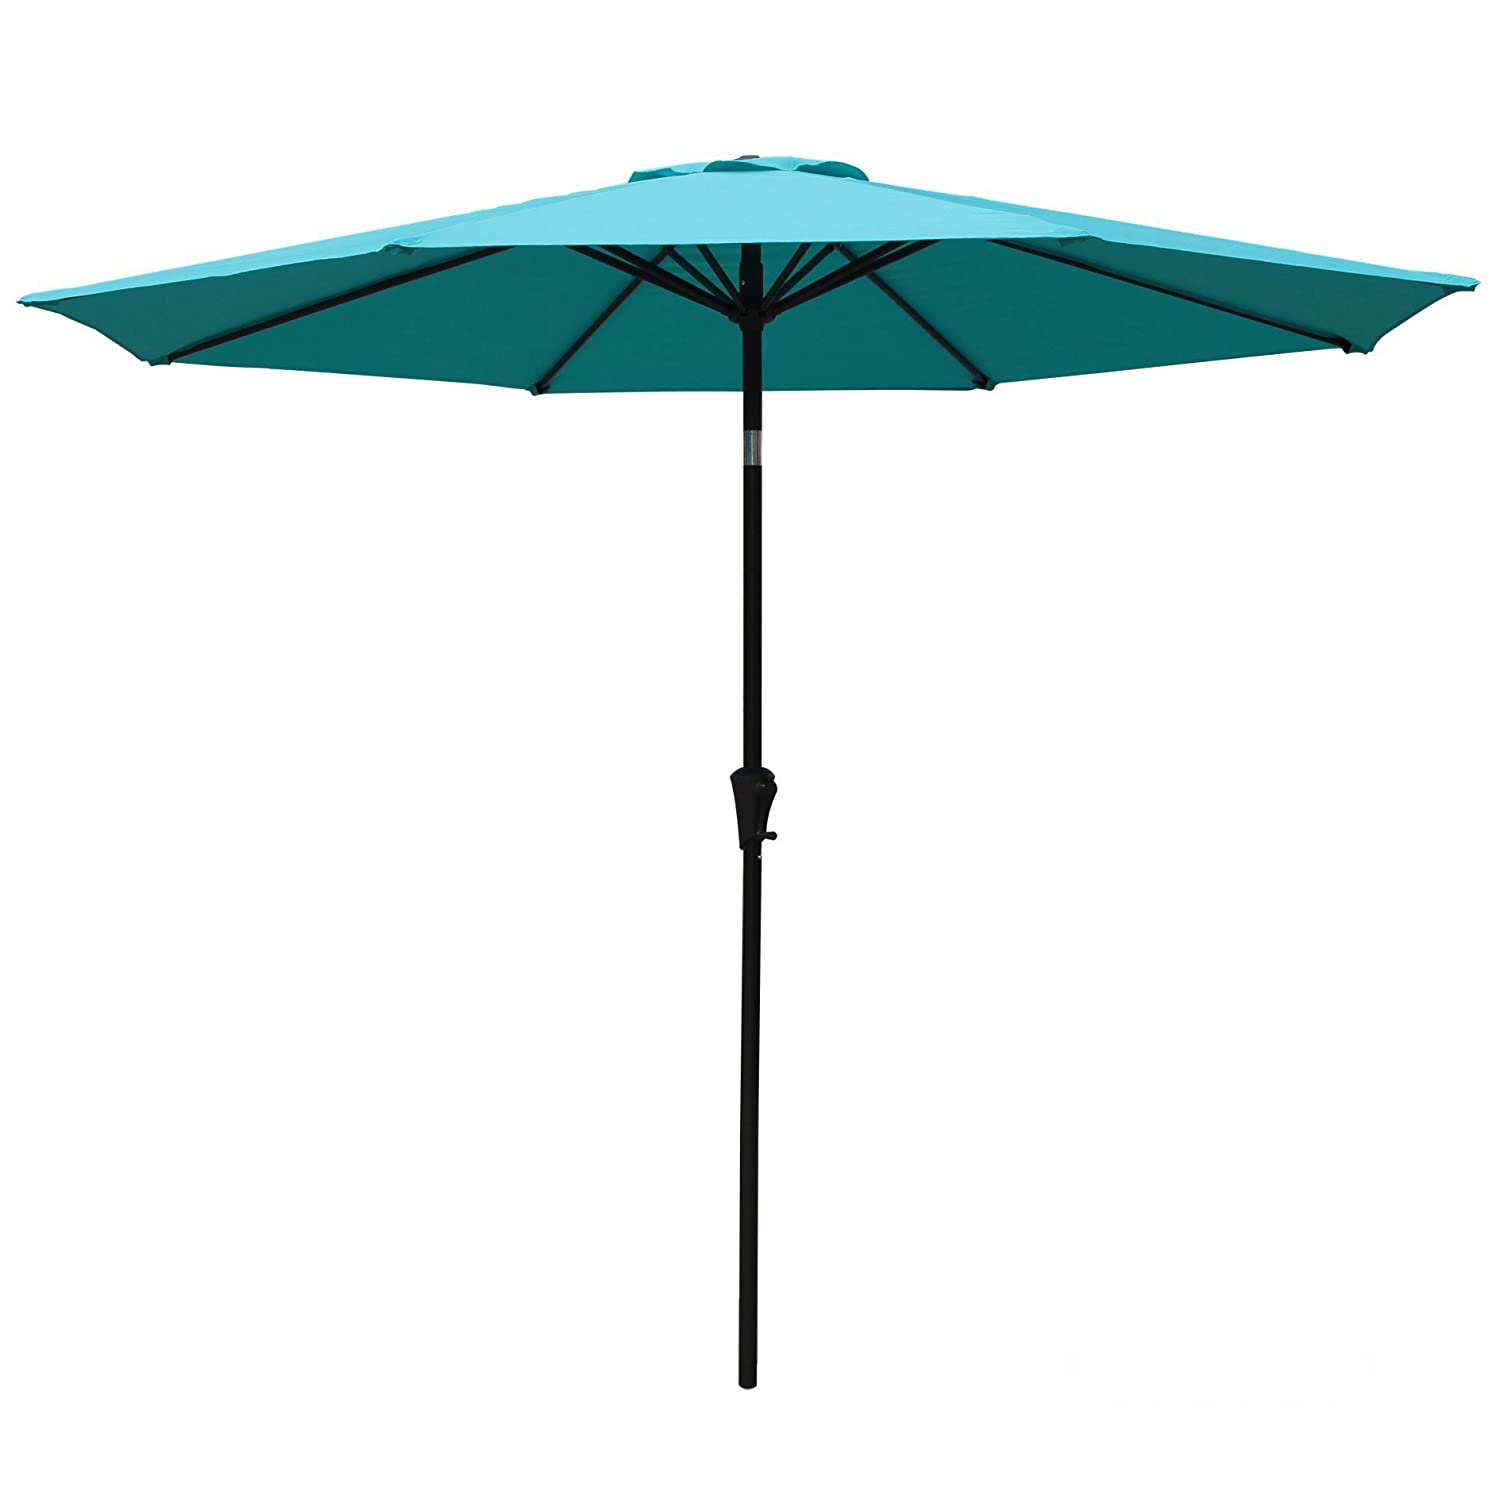 COBANA 9 Ft Aluminum Patio Umbrella. - Patio Umbrellas Amazon.com